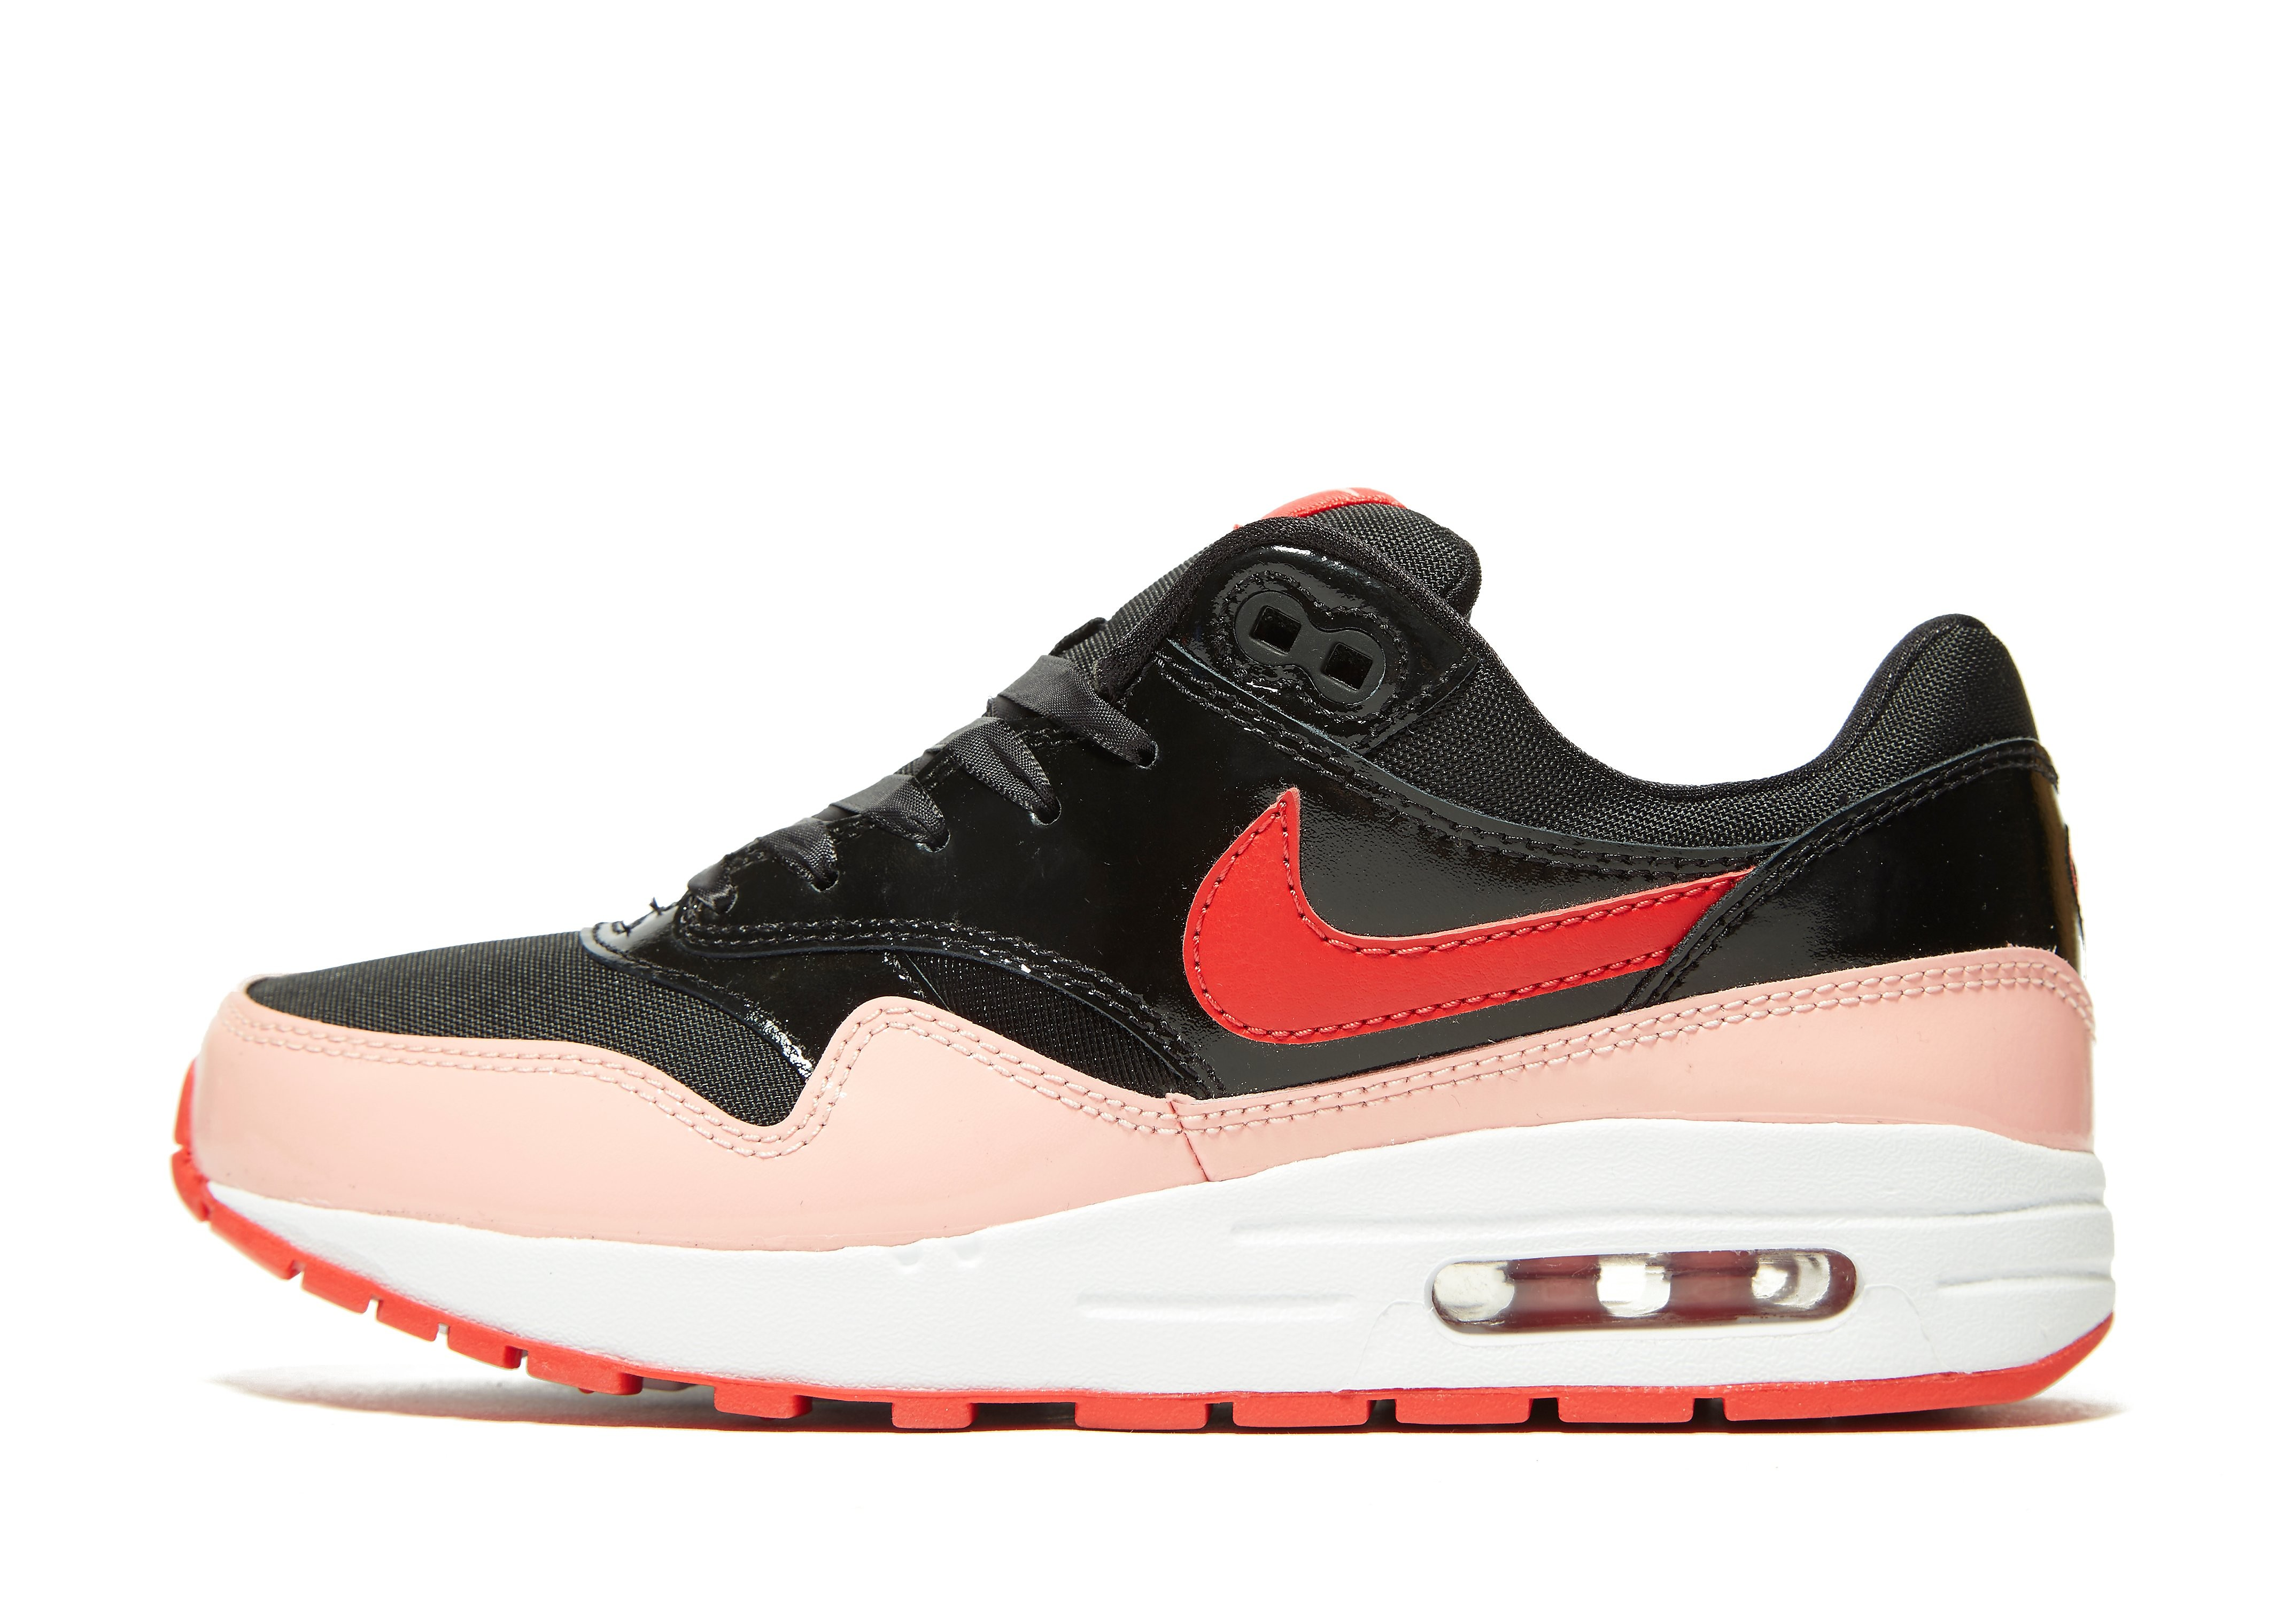 Nike Air Max 1 Ultra 20 Flyk - 875942600 - Color Negro-Blanco-Rojo - Size: 44.5 RRG2aEy